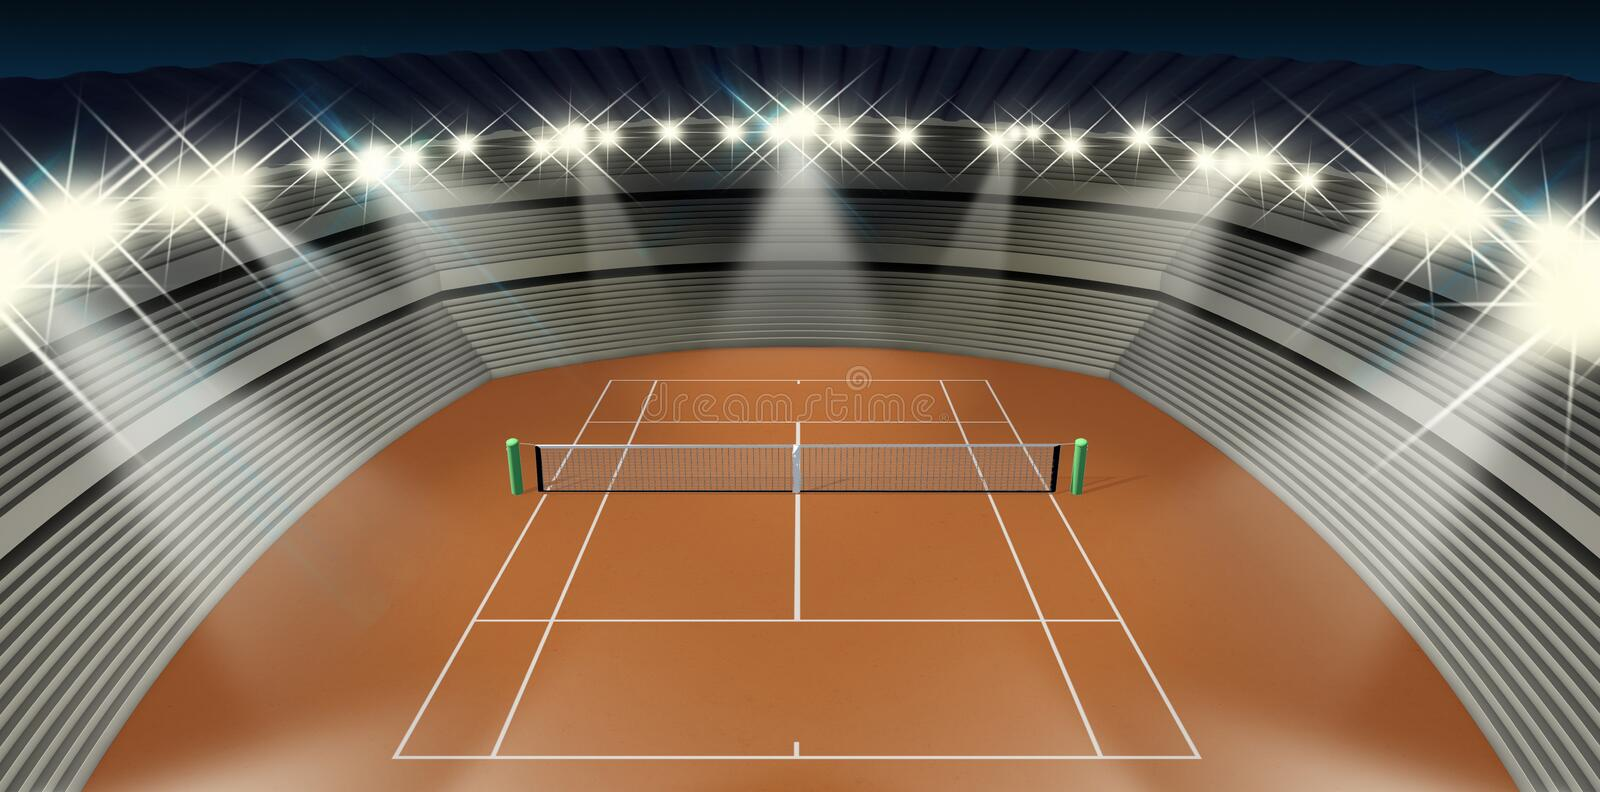 Clay Tennis Court At Night. An orange clay tennis court in a stadium at night under floodlights stock illustration